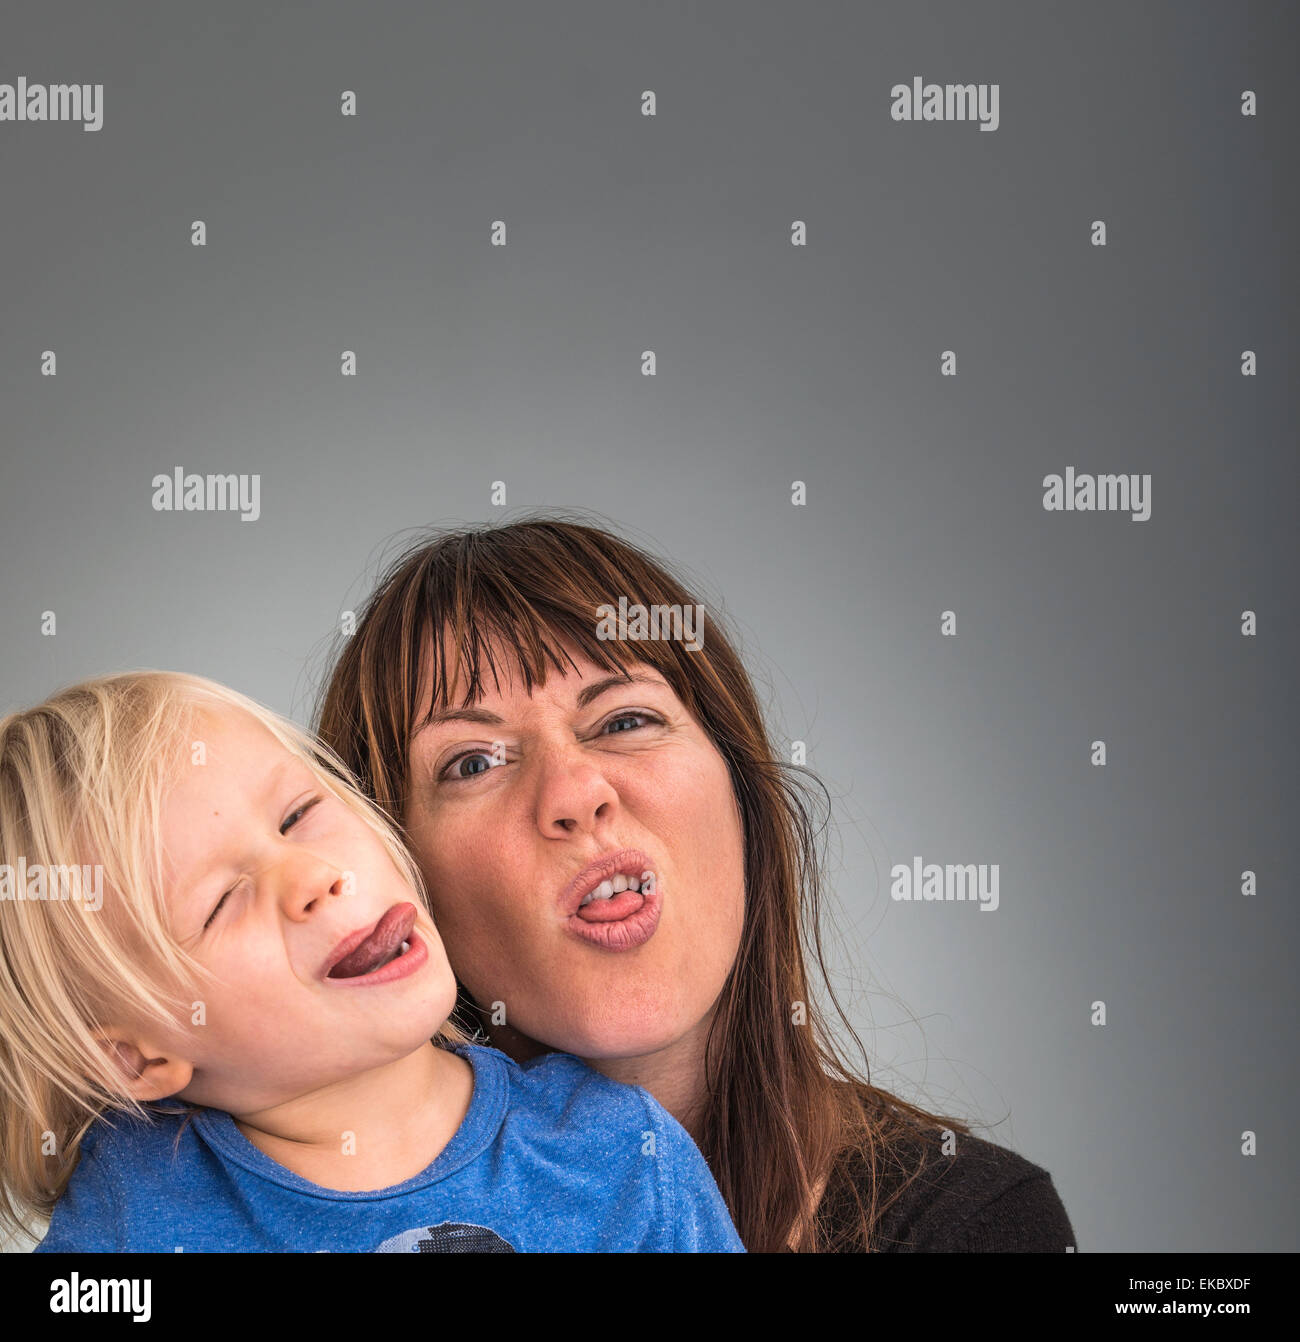 Portrait de mère et fils, pulling faces Photo Stock